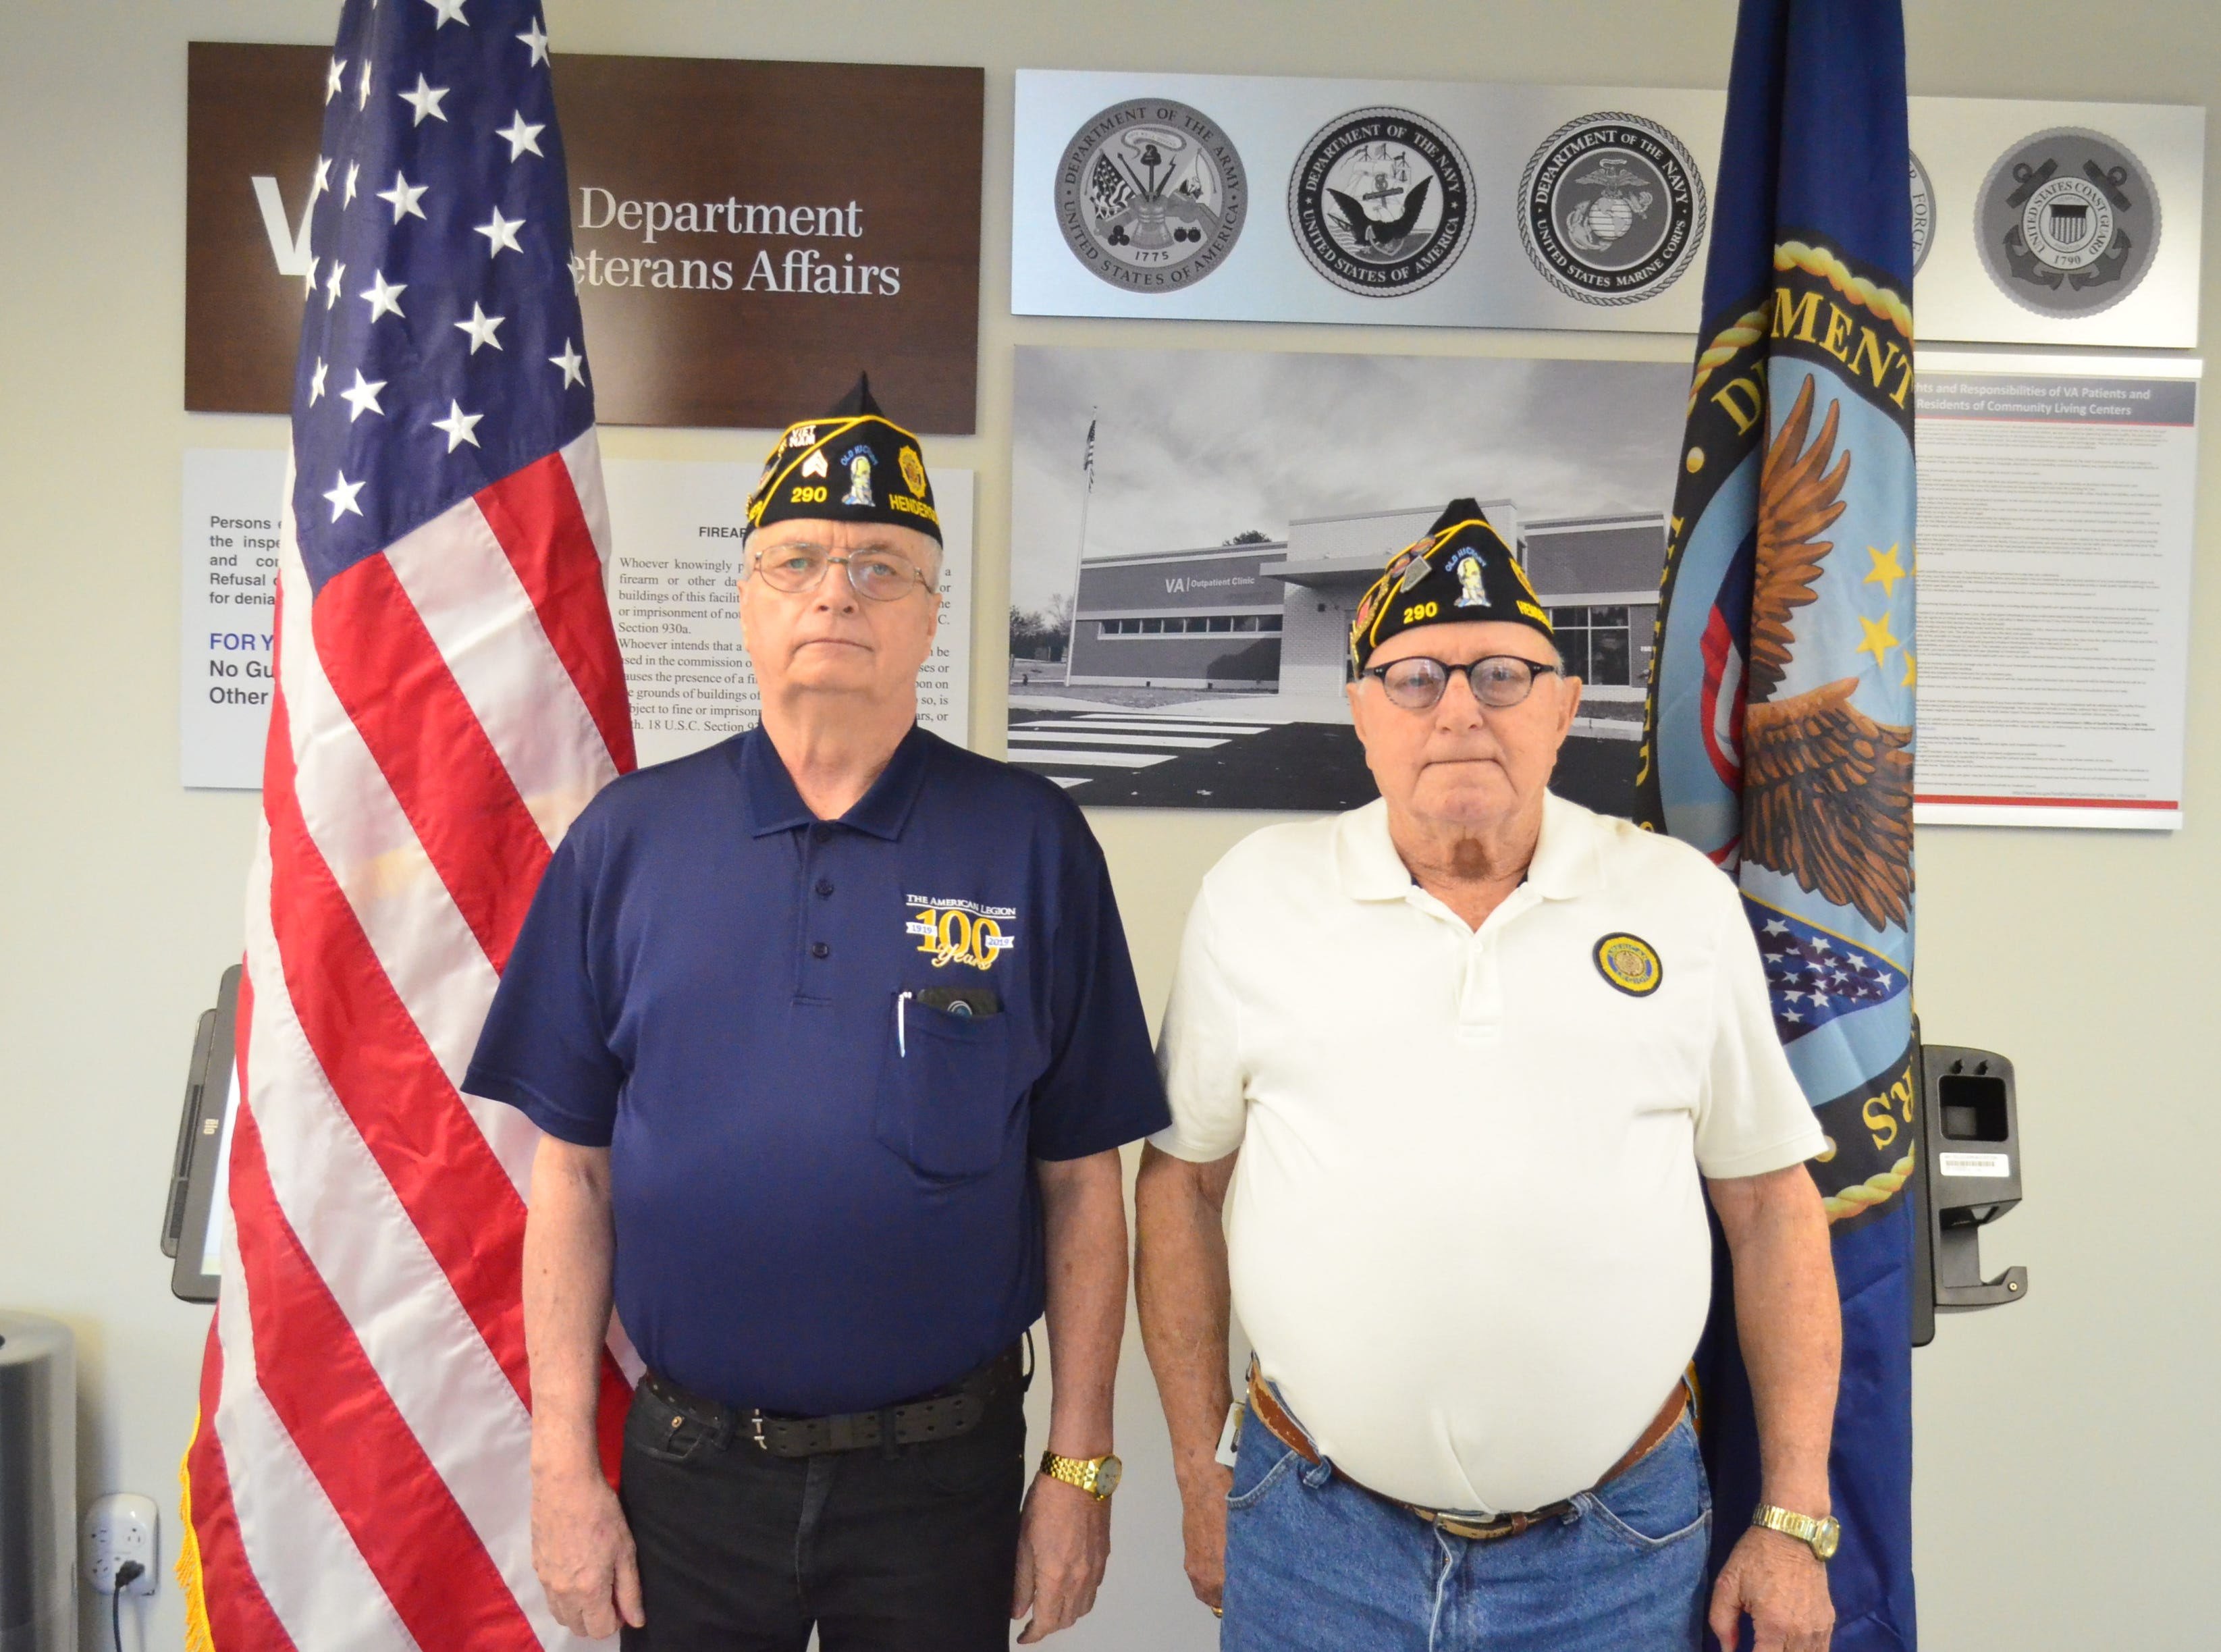 Veterans Phillip Haisler (left) and Abel Lormand are pictured at the Gallatin clinic before the ribbon cutting ceremon on March 1, 2019.